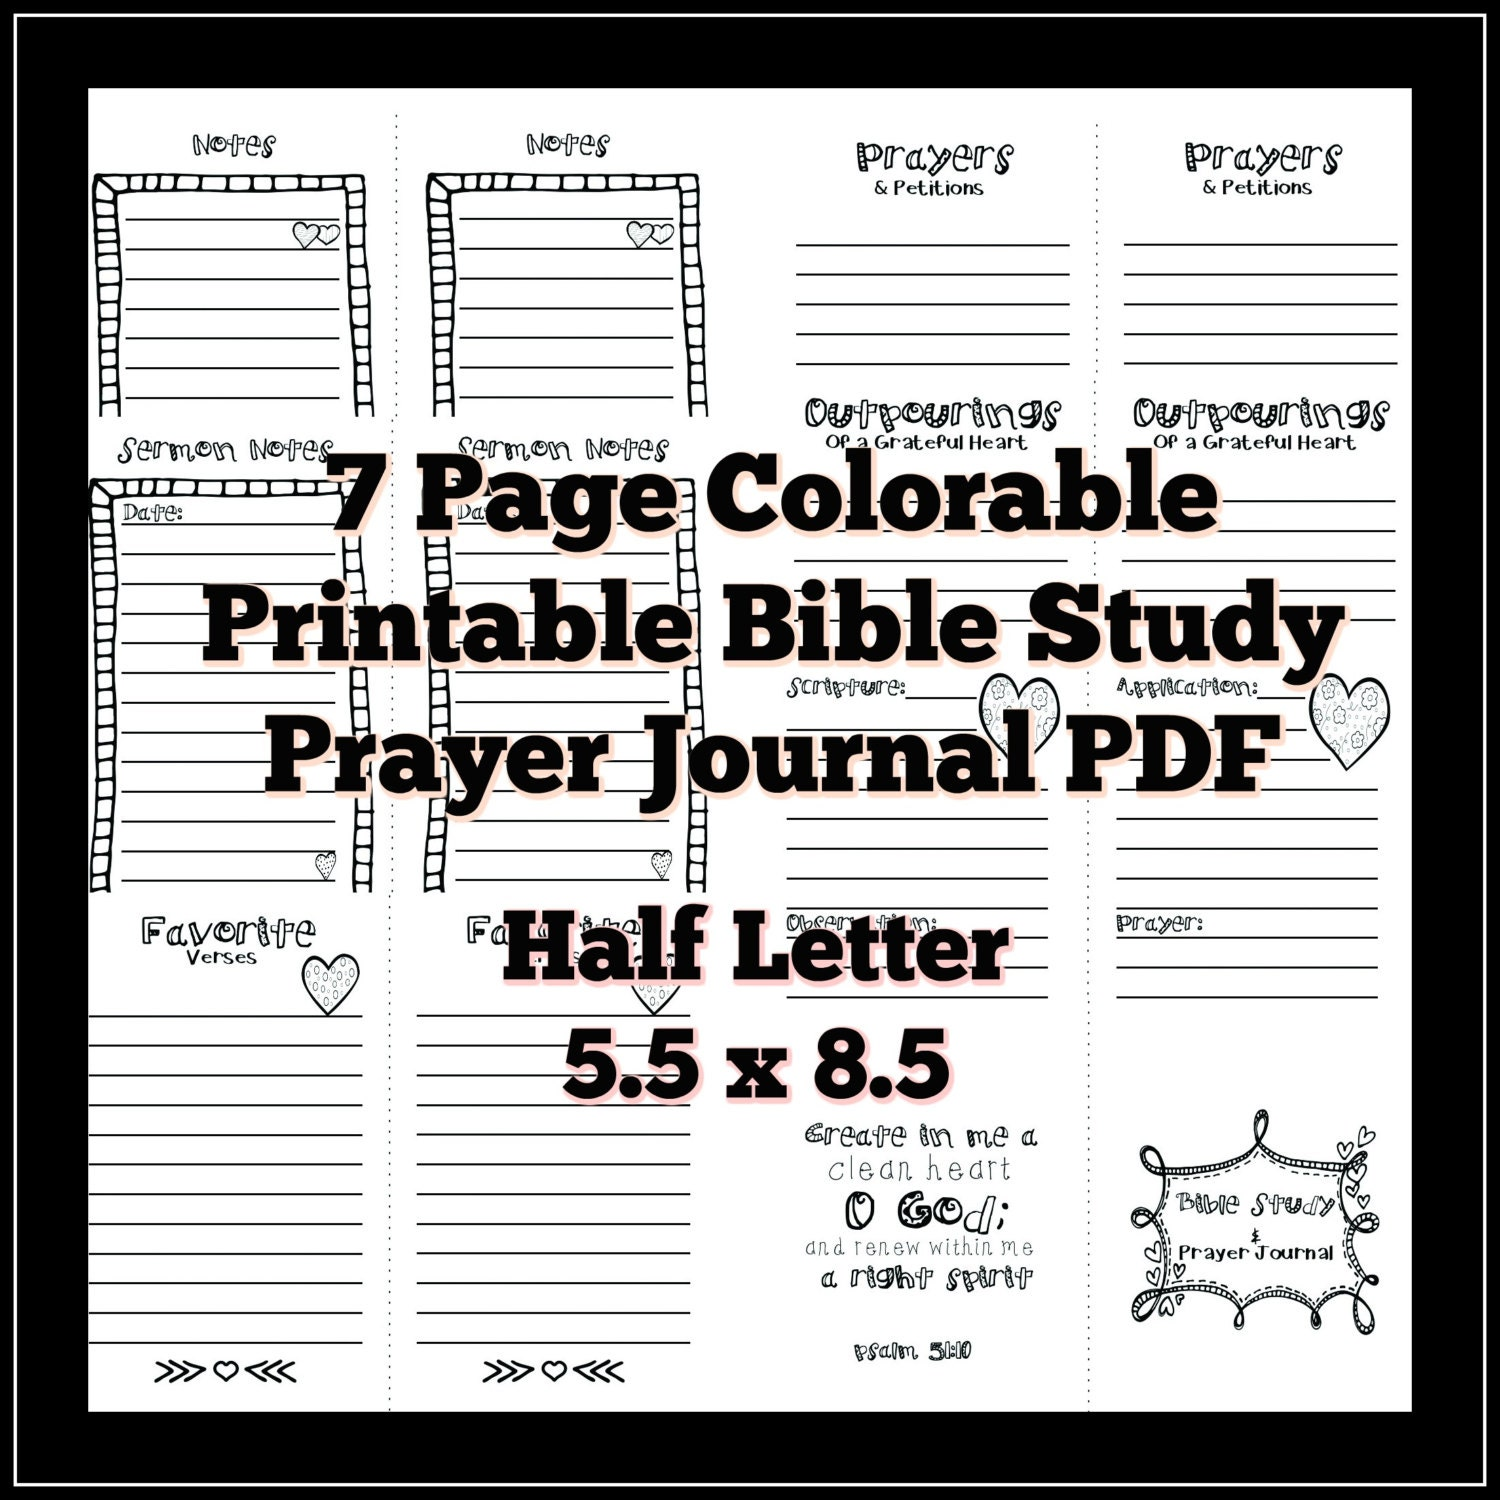 Half Letter 5 5x8 5 Bible Study Prayer Journal Colorable Printable Pdf  Planner Refills S O A P  Method